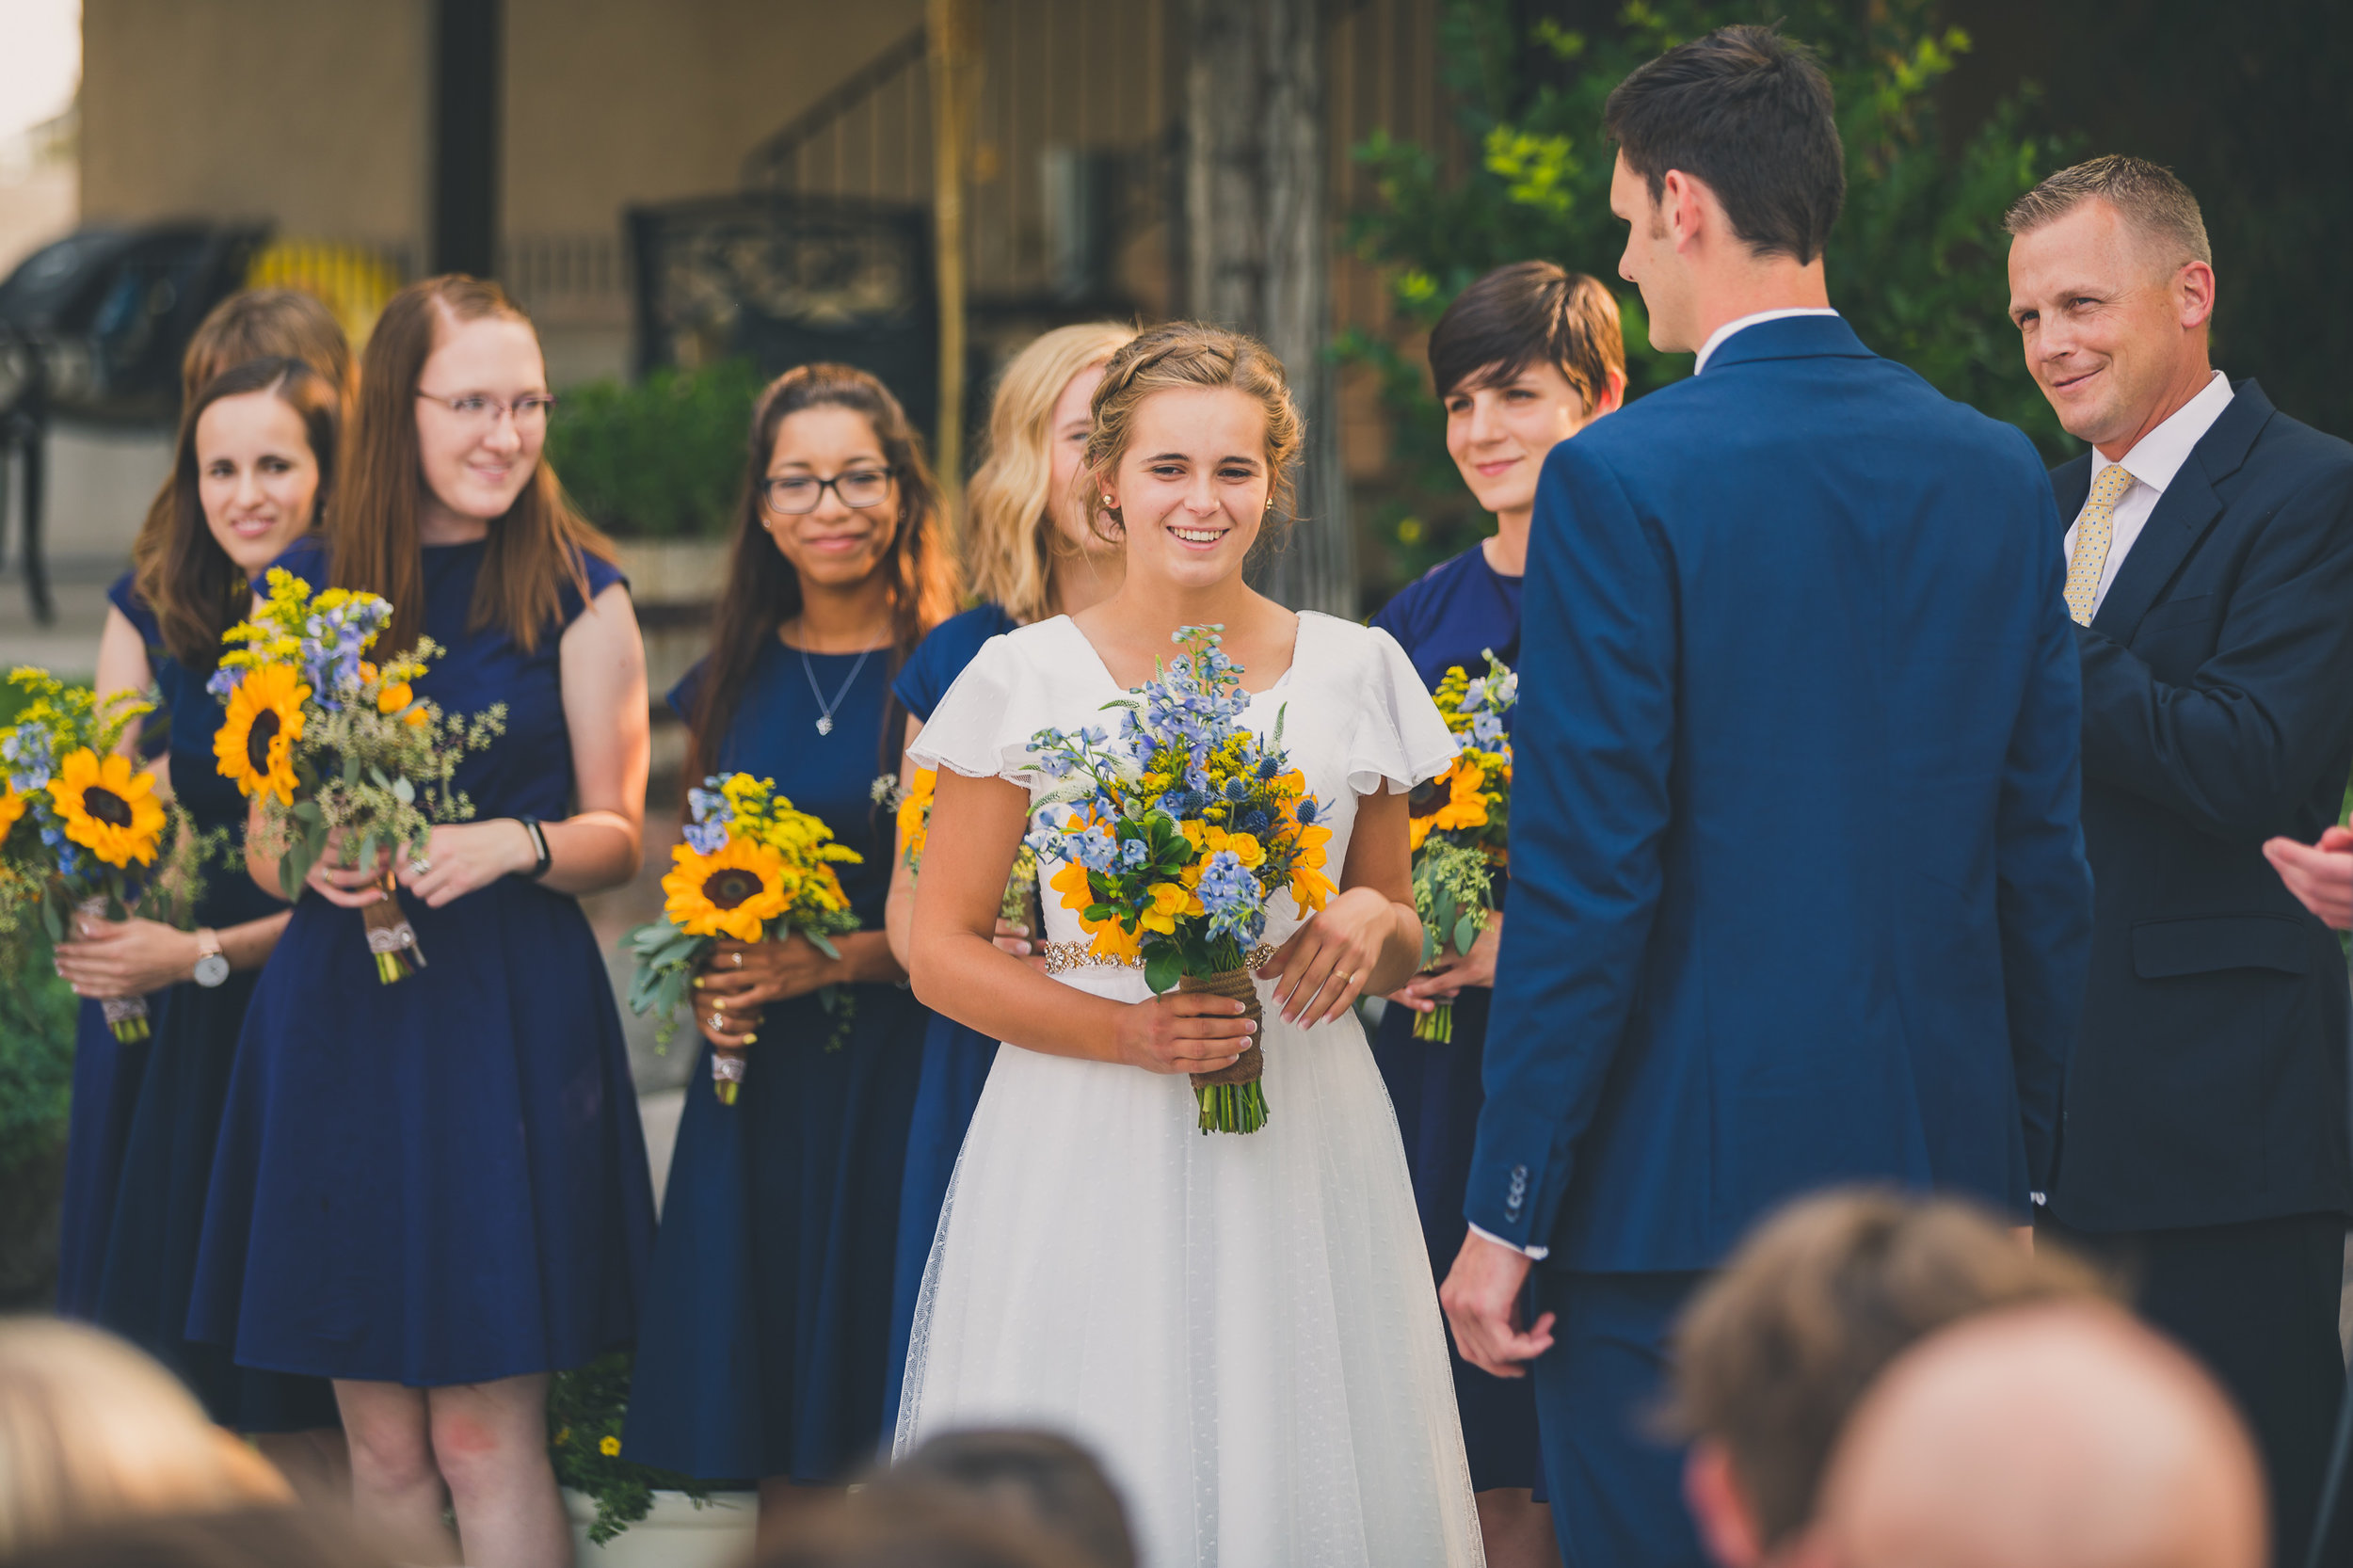 SydneyAndrew_Wed542.jpg